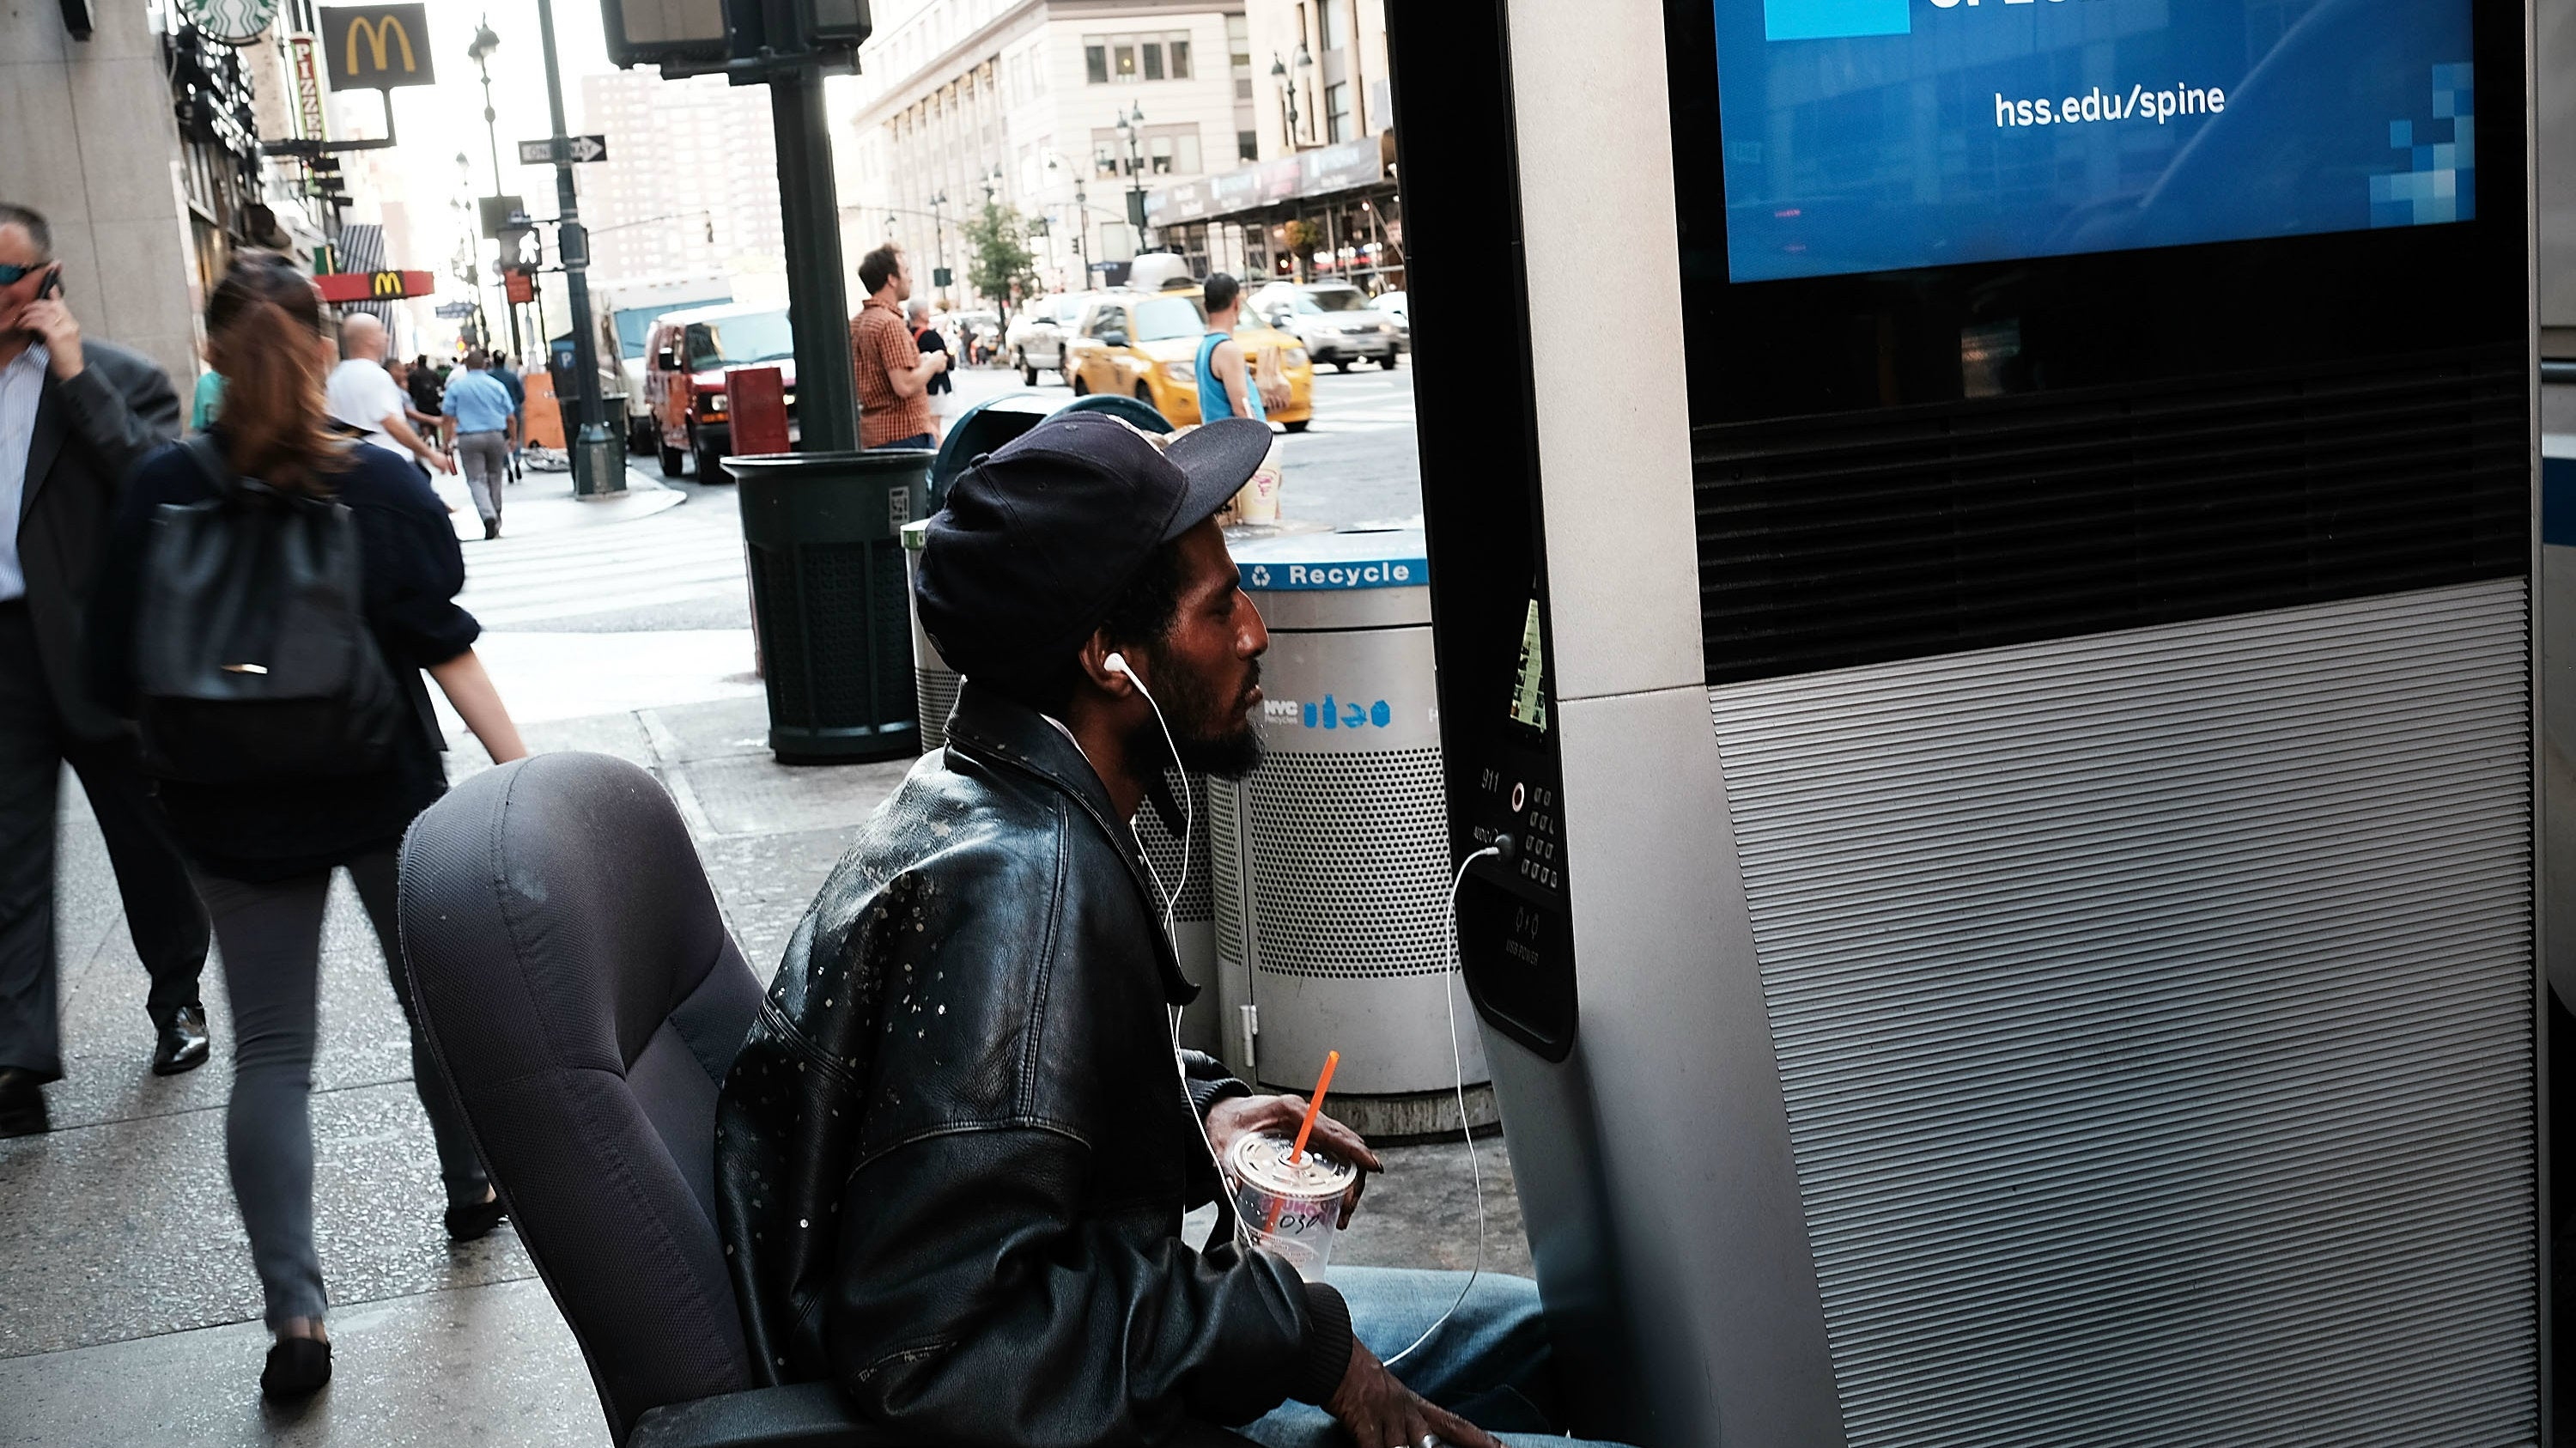 Free Web Browsing Disabled On NYC Internet Kiosks Because Homeless People